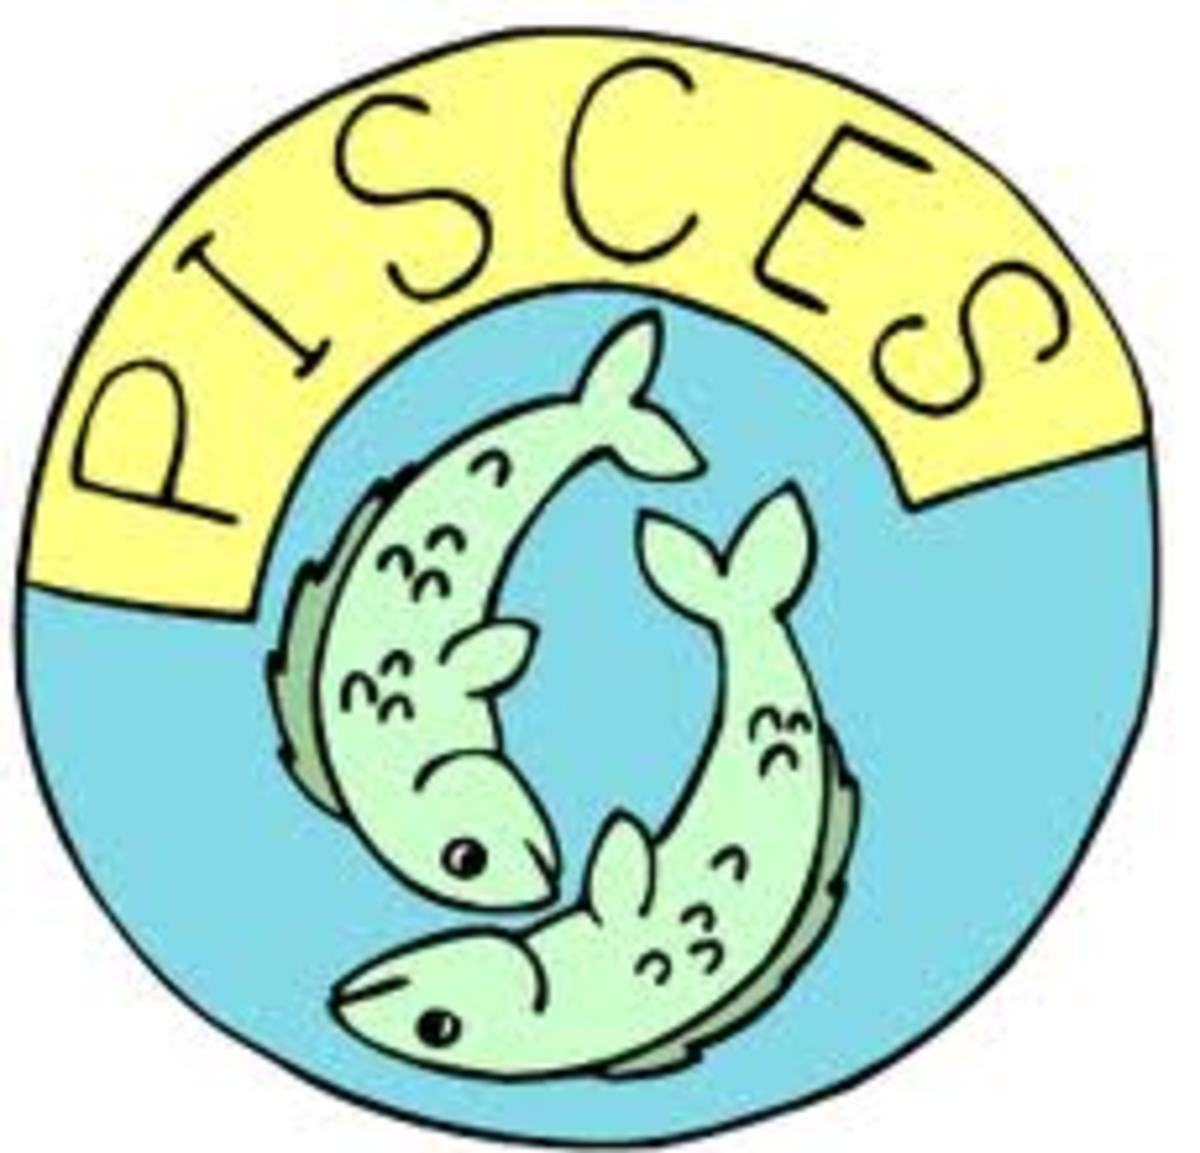 Everything You Need to Know When Dating or Relating to a Piscean